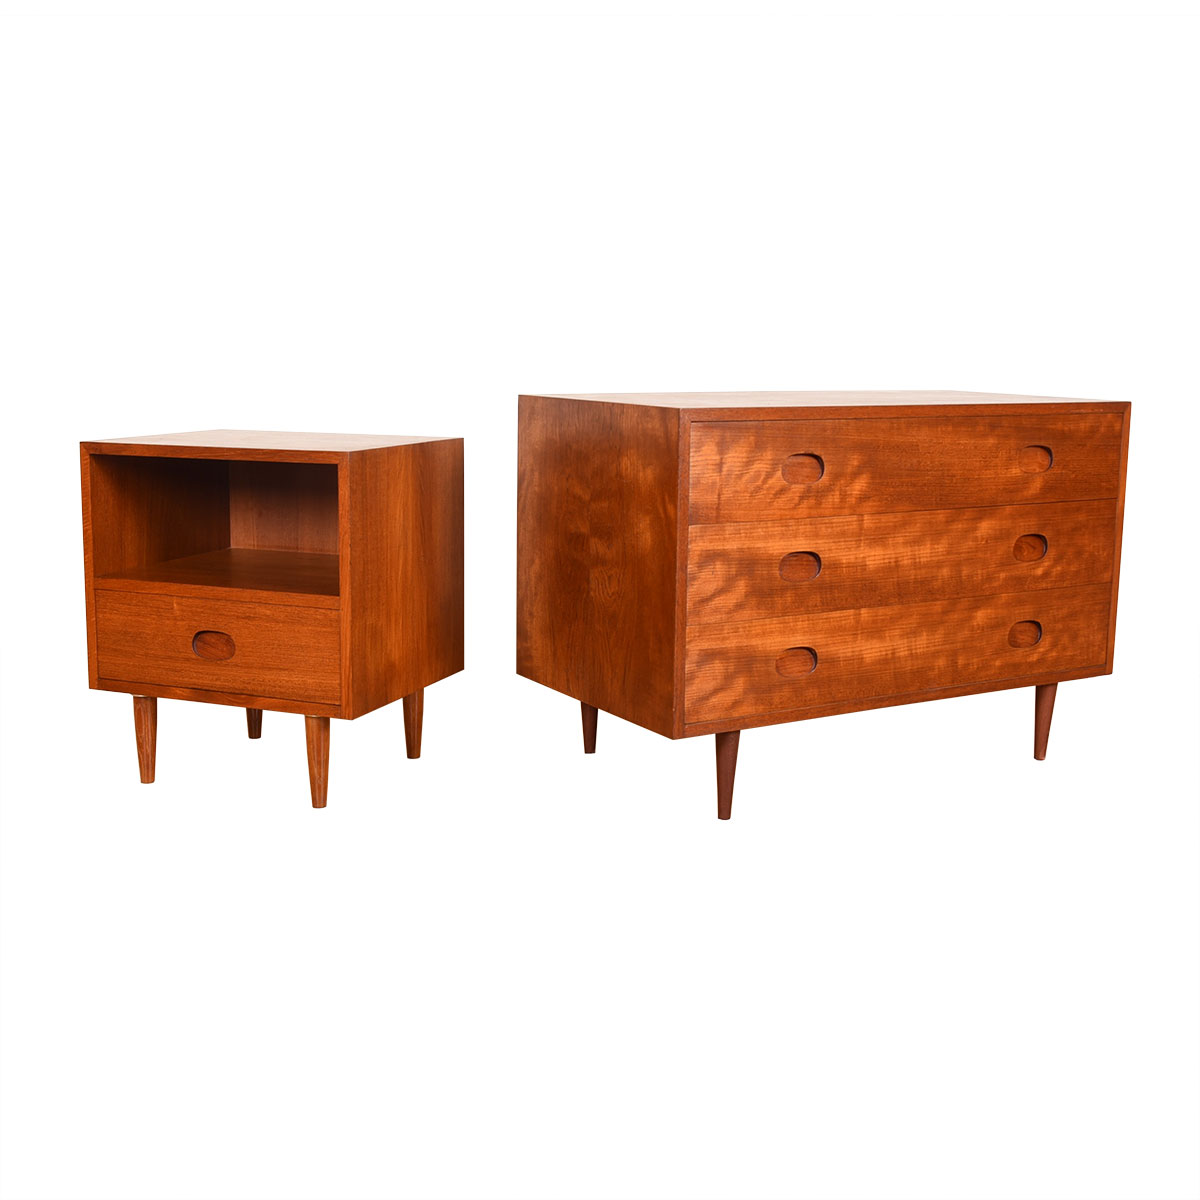 Danish Modern Teak Chest of Drawers with Inset Oval Pulls